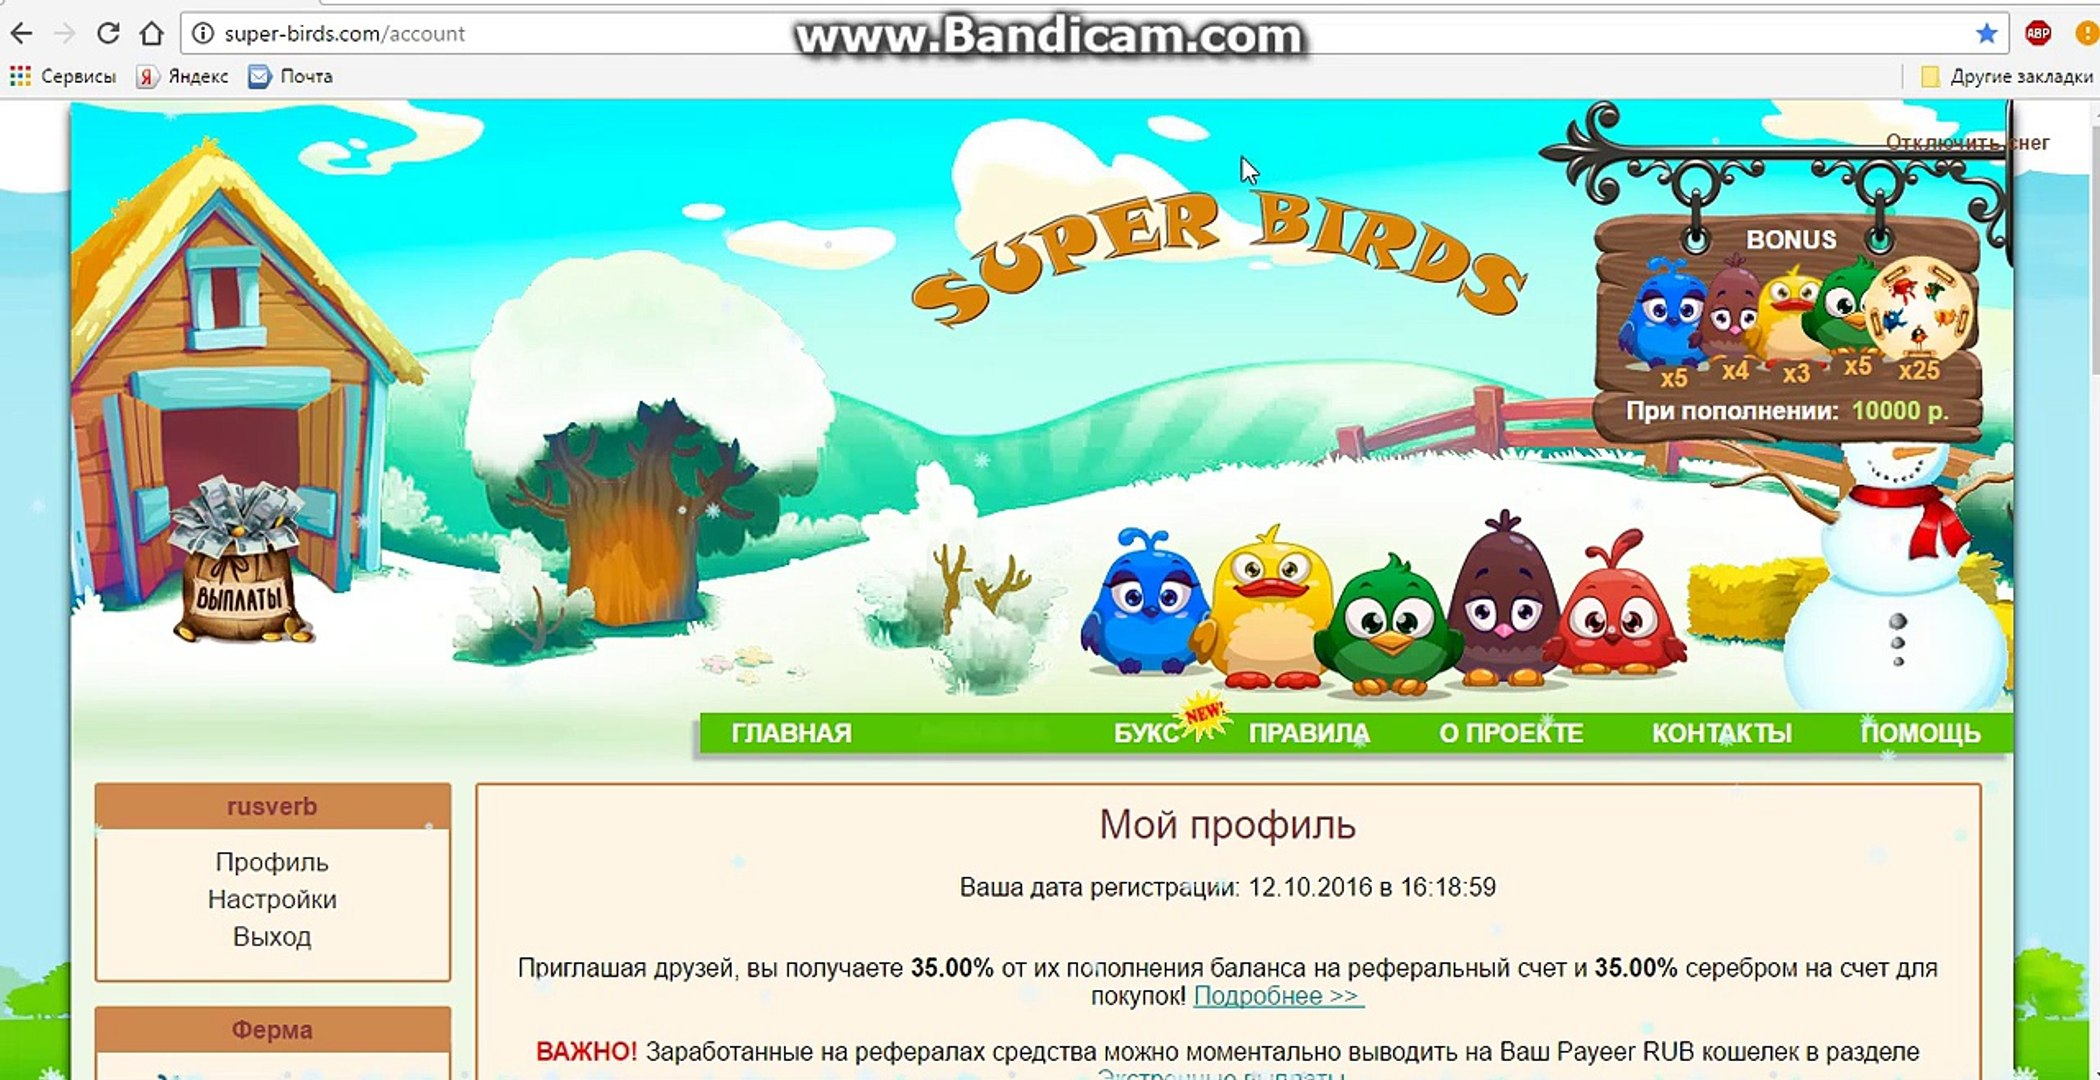 Super Bird - Earn real money daily with Super Birds